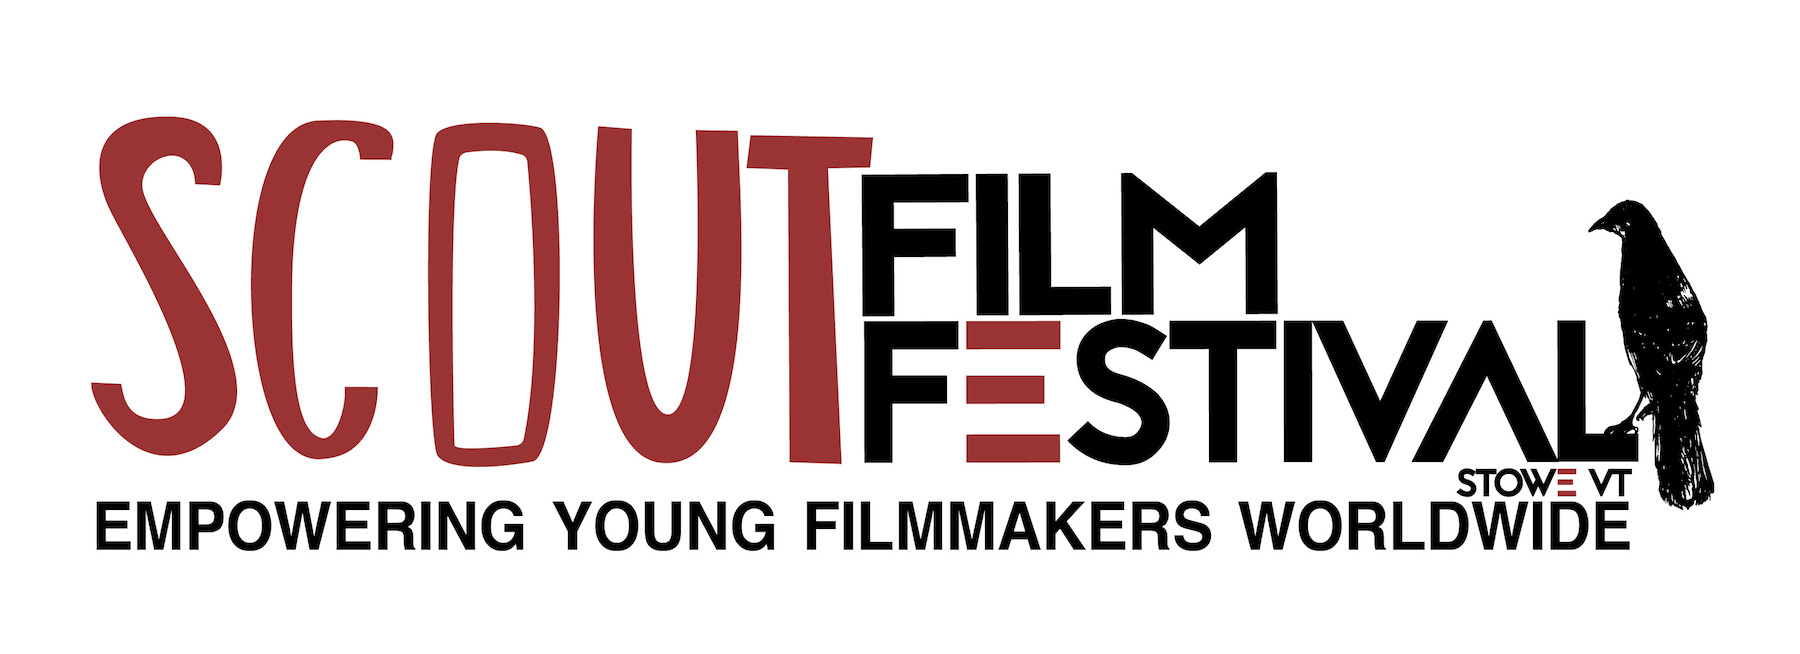 Scout Film Festival is an annual international event for emerging filmmakers.